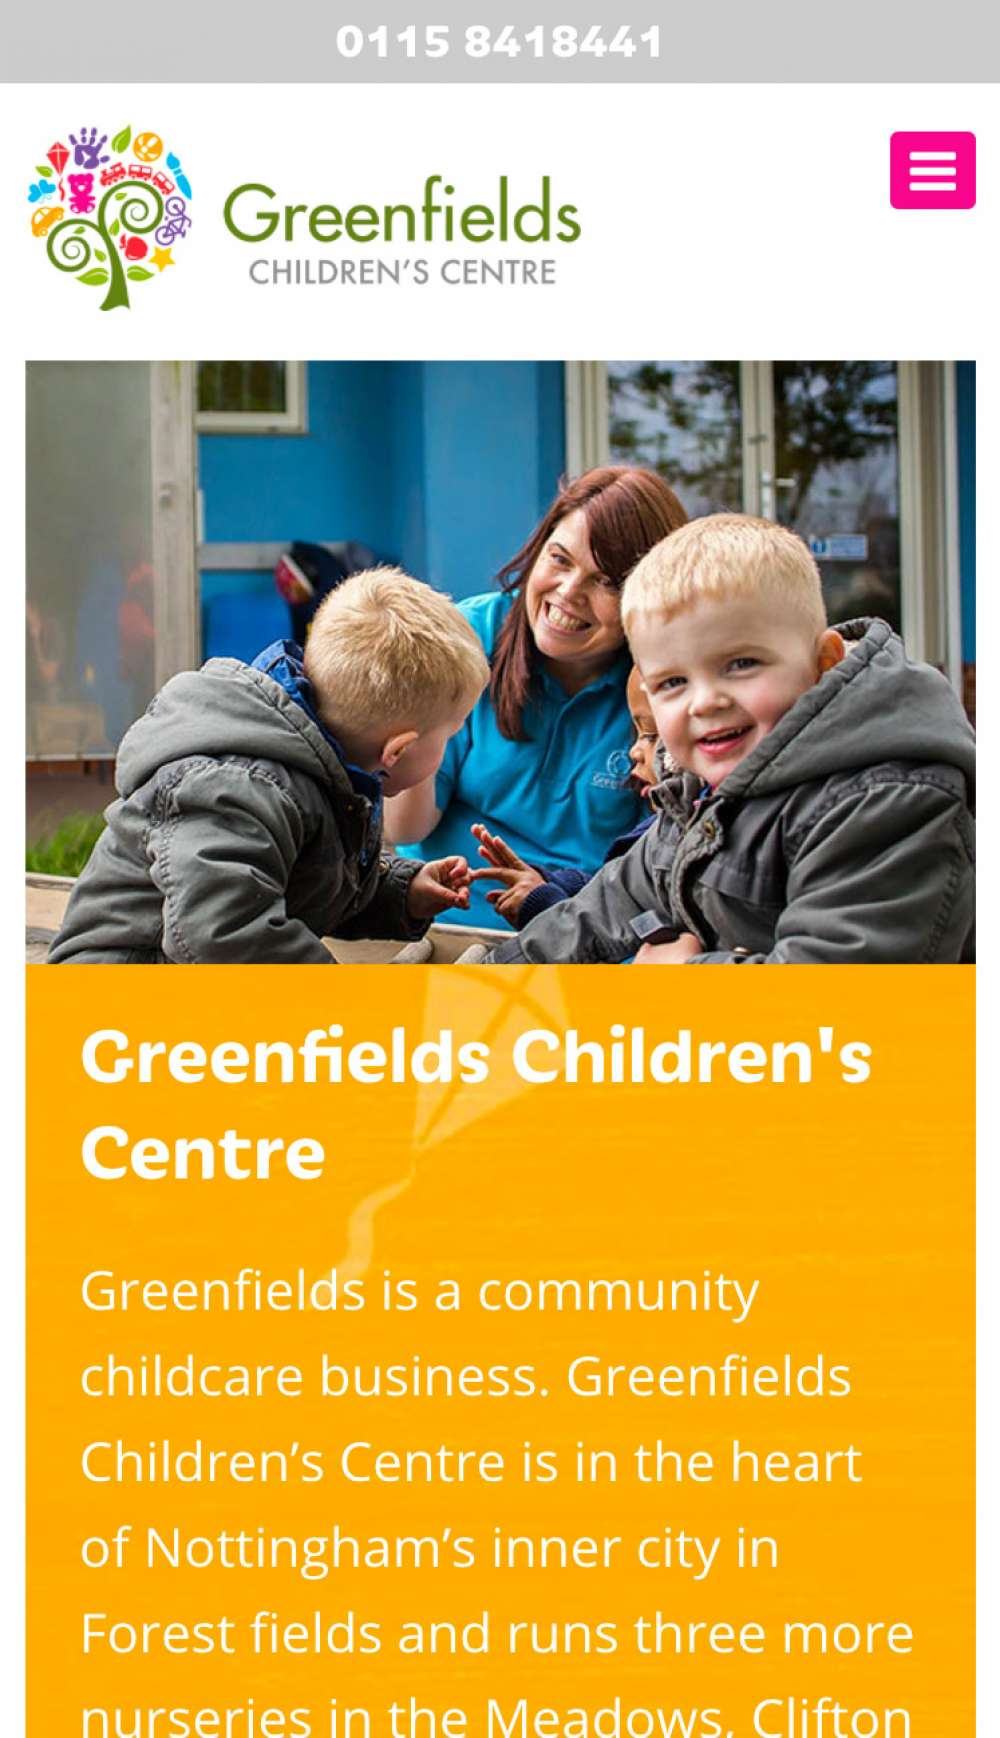 Greenfields Children's Centre